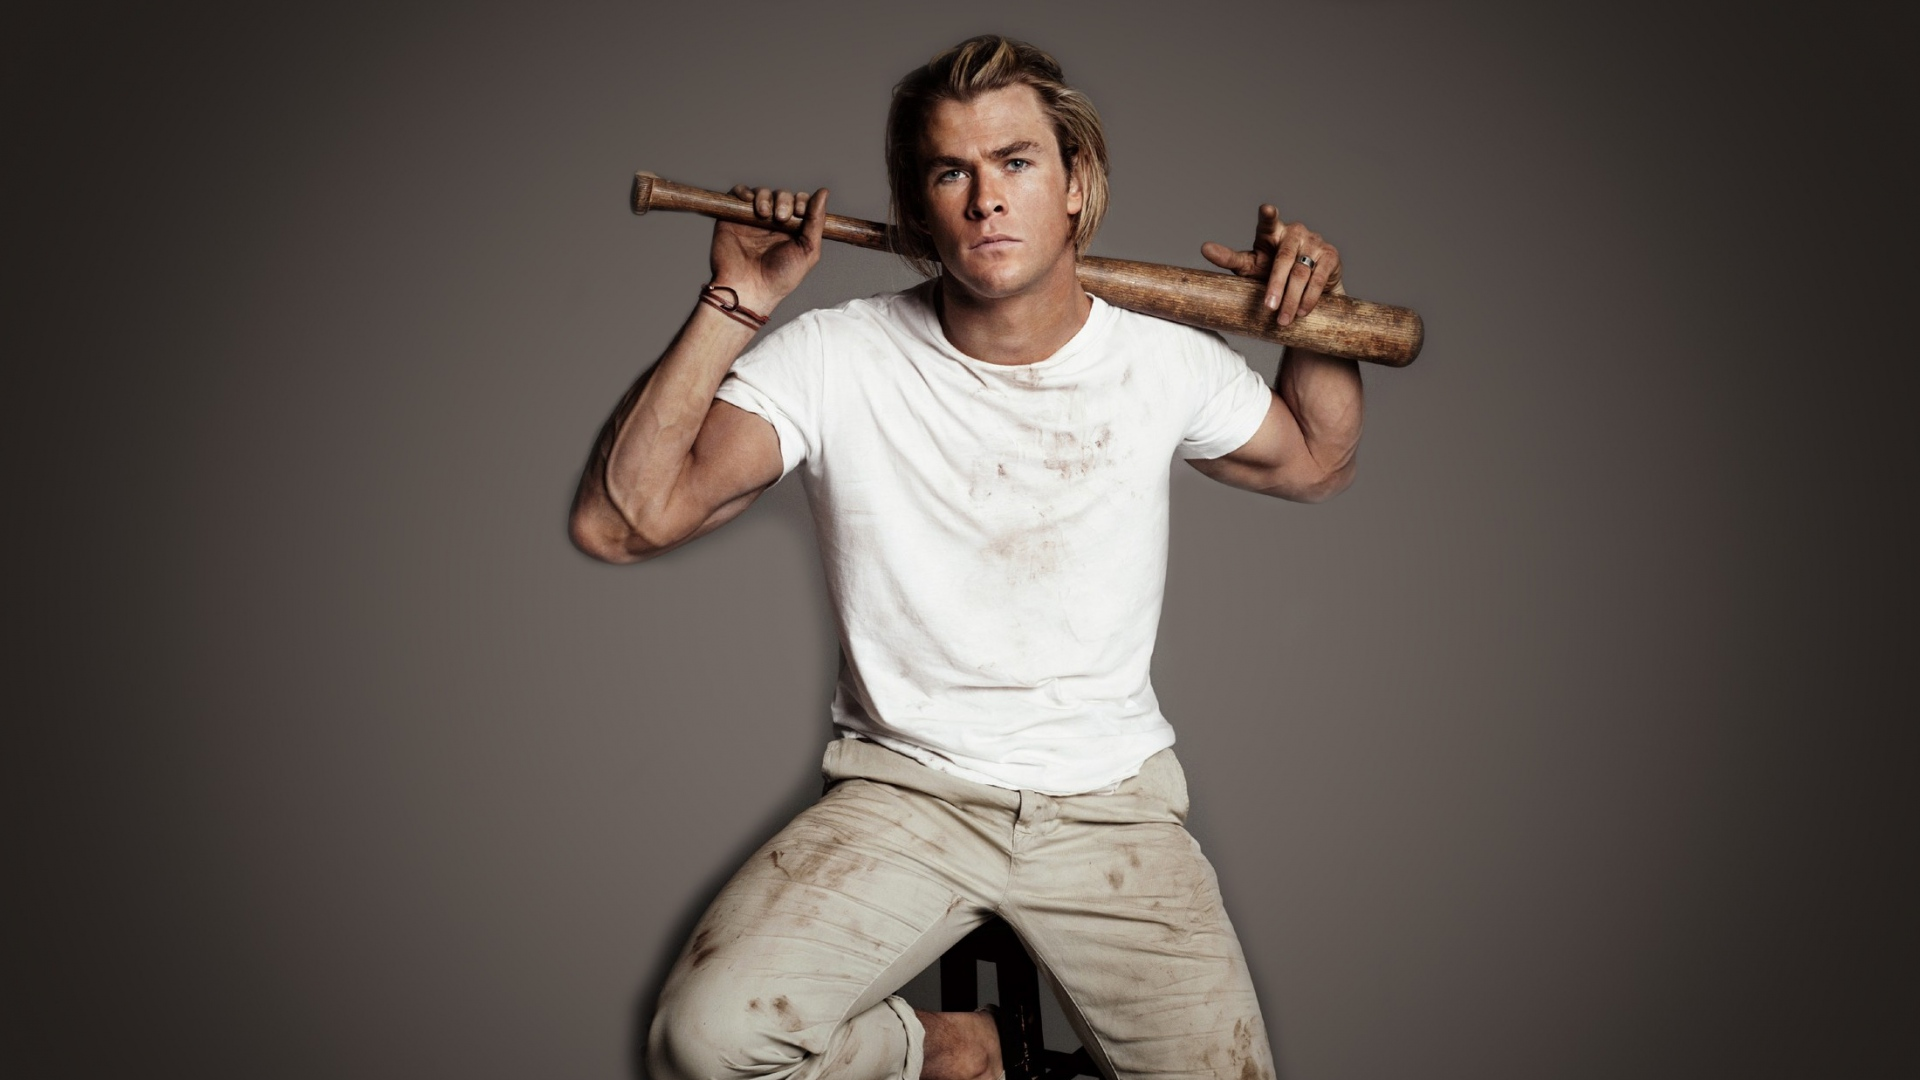 Chris Hemsworth Wallpapers High Resolution and Quality 1920x1080